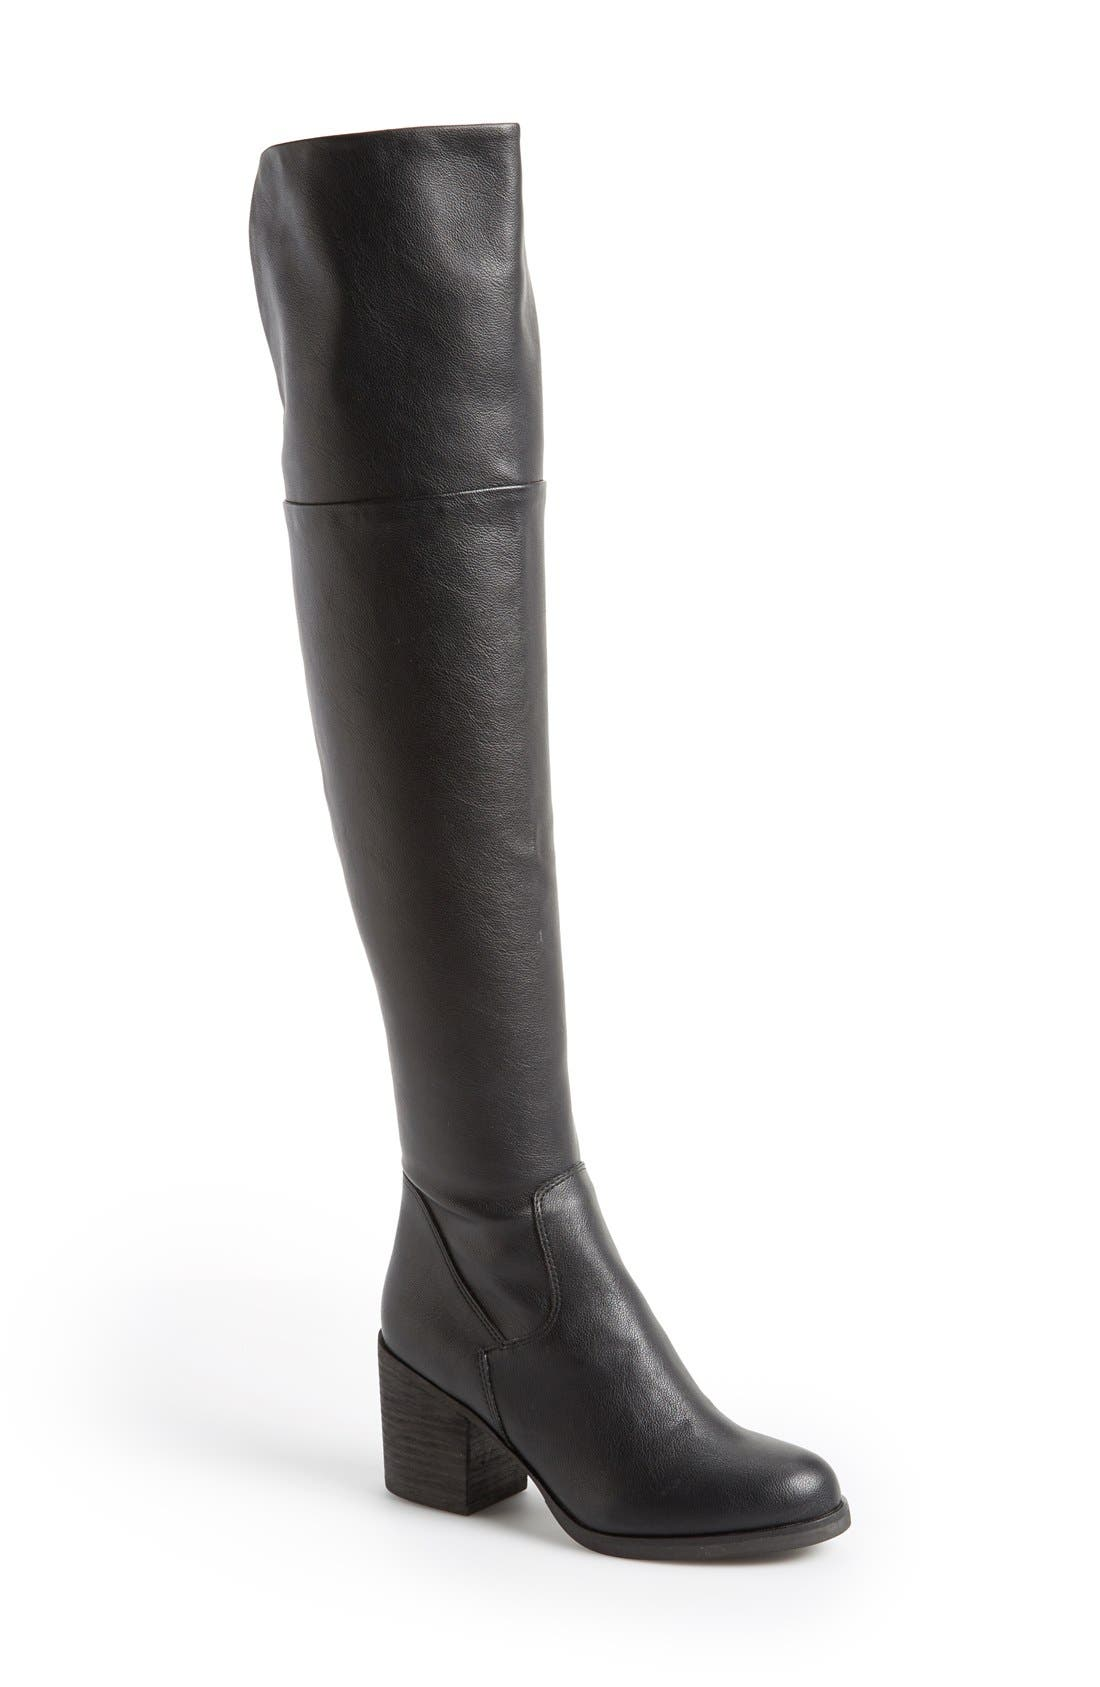 Main Image - Steve Madden 'Odyssey' Over the Knee Boot (Women)